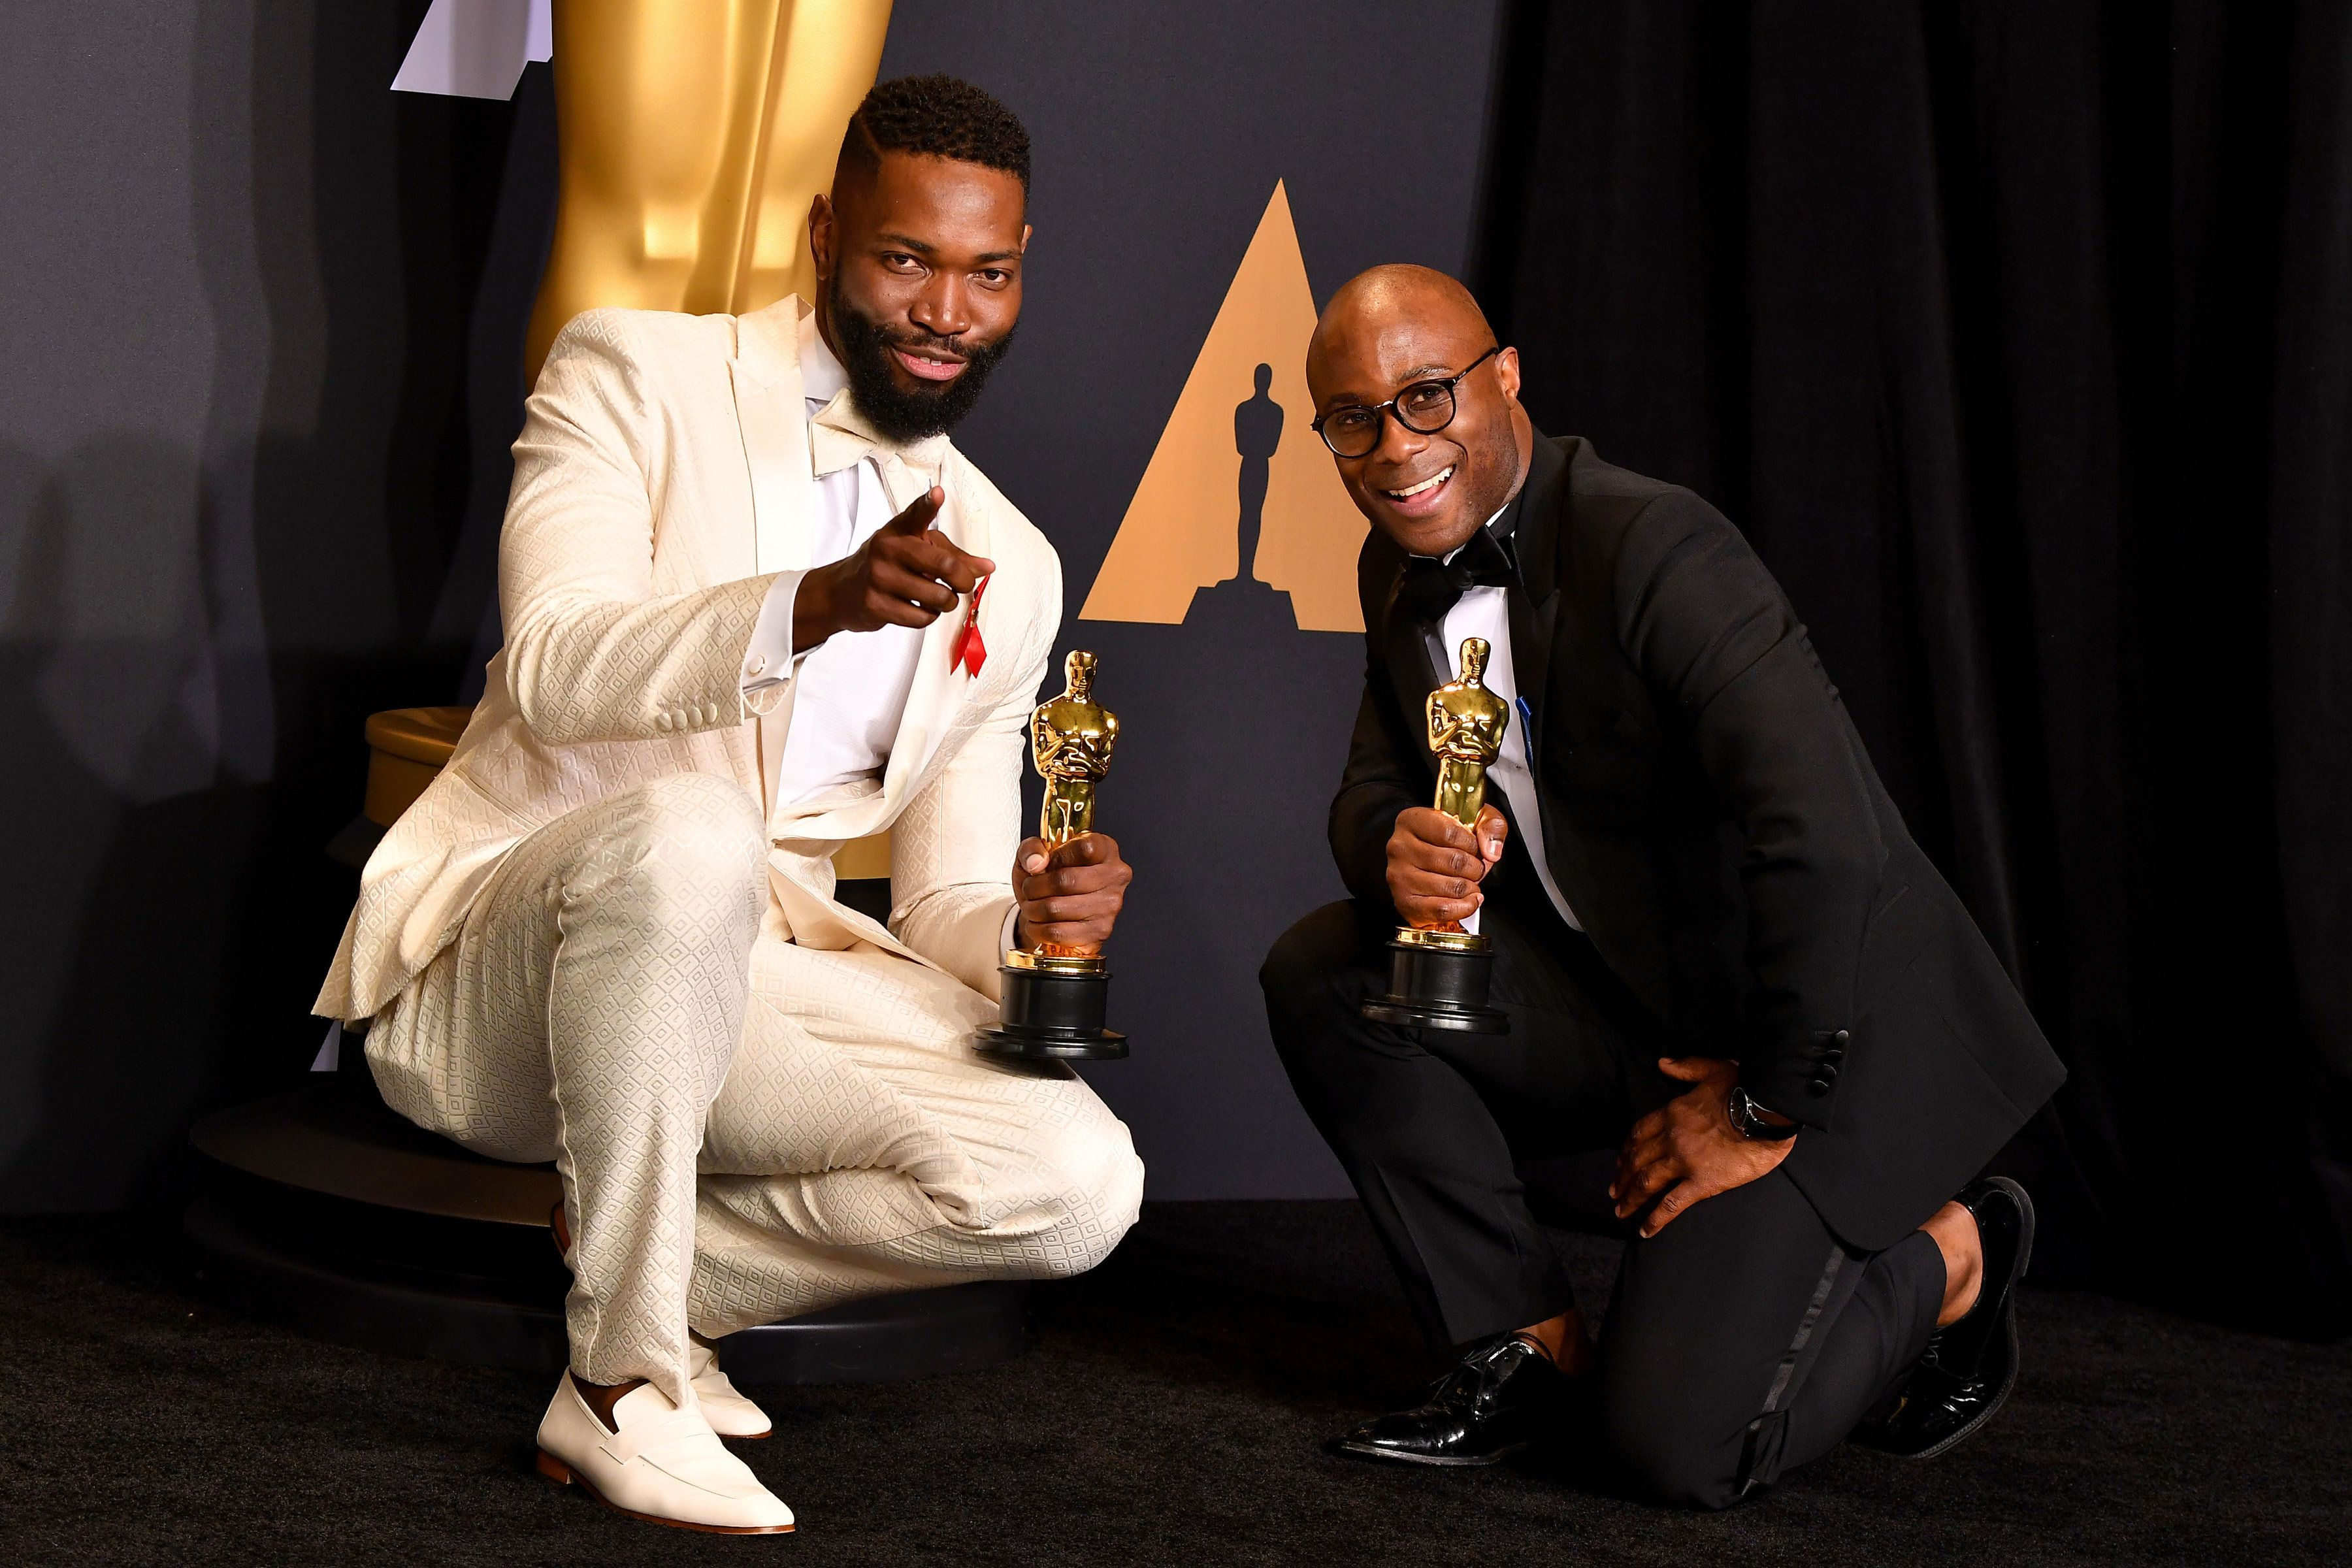 HOLLYWOOD, CA - FEBRUARY 26:  Screenwriter Tarell Alvin McCraney (L) and filmmaker Barry Jenkins, winners of the award for Adapted Screenplay for 'Moonlight,' pose in the press room during the 89th Annual Academy Awards at Hollywood & Highland Center on February 26, 2017 in Hollywood, California.  (Photo by Steve Granitz/WireImage)